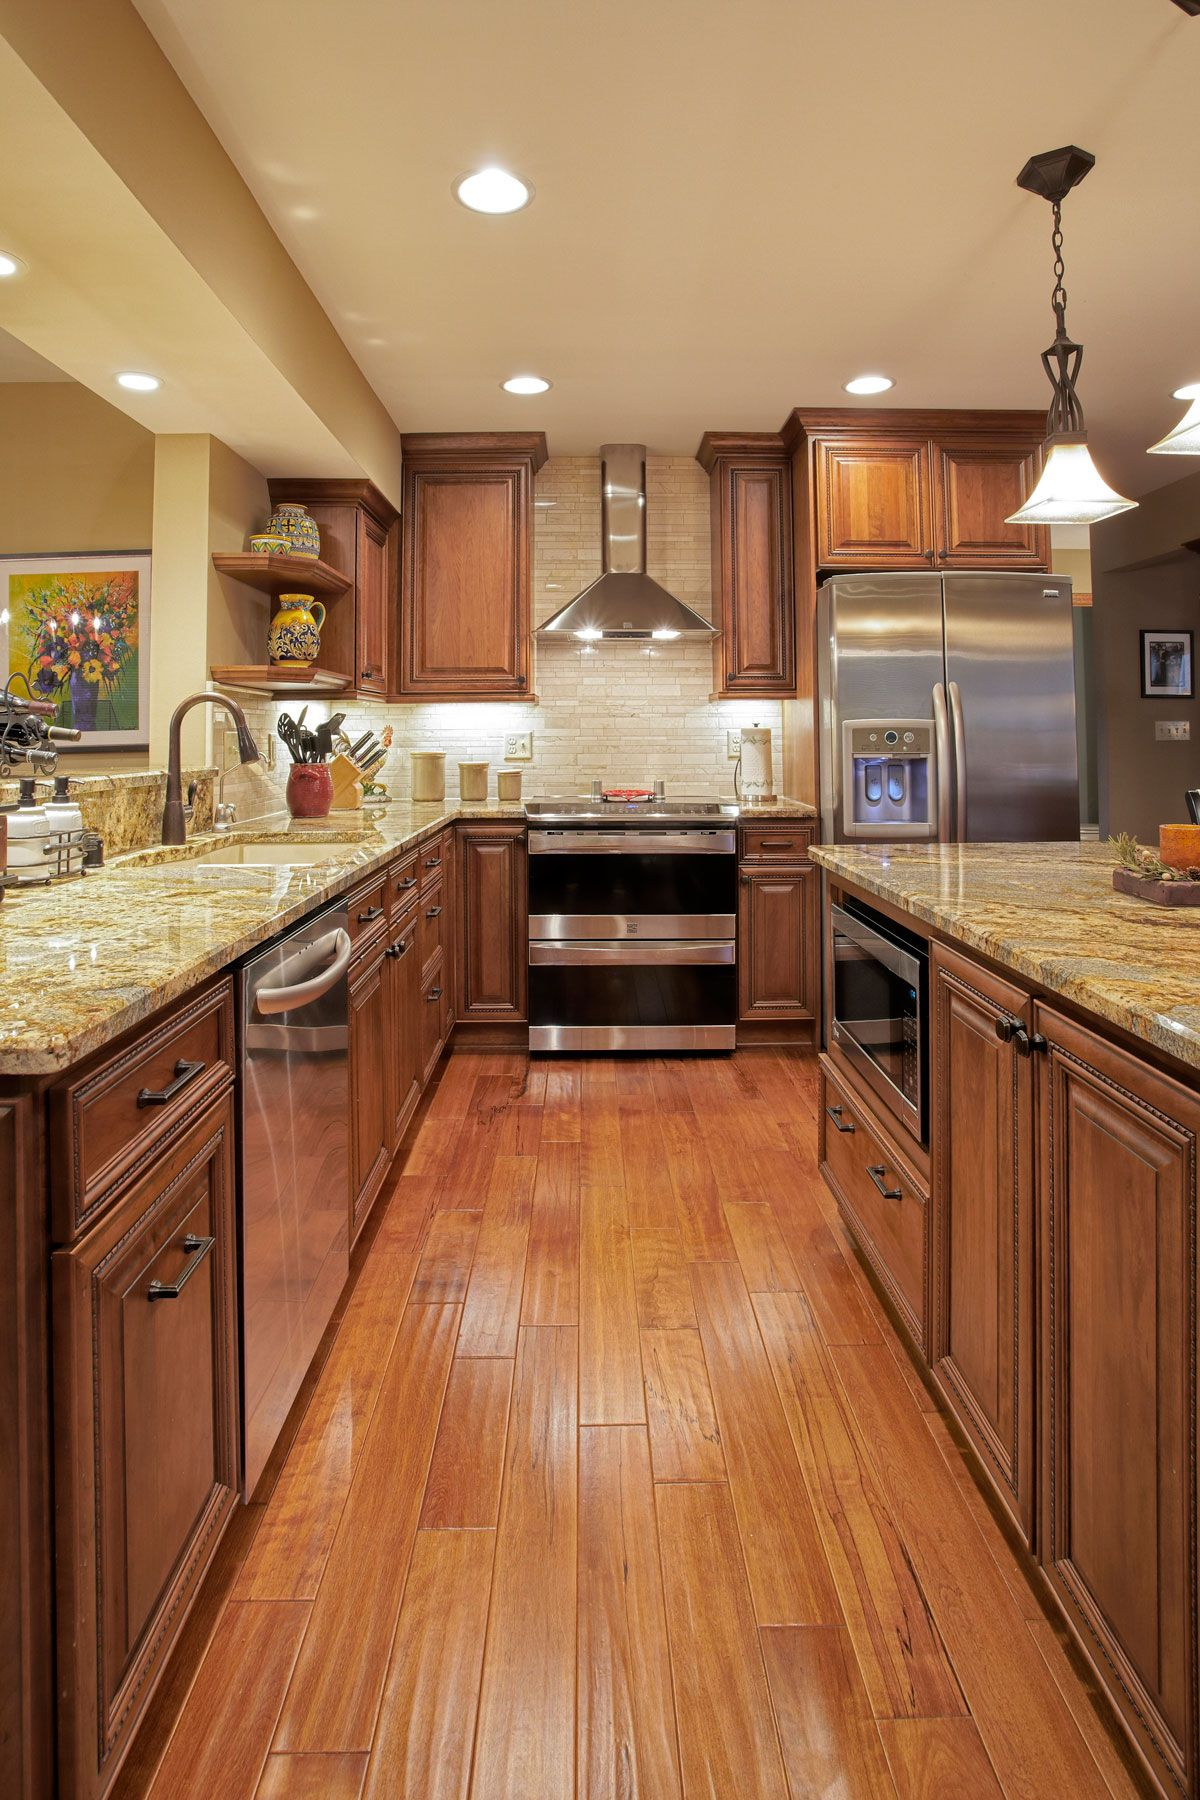 Woods In Warm Rich Medium Brown Tones Were Used To Great Success In This Kitchen Remodel In Brown Kitchen Cabinets Wooden Kitchen Cabinets Kitchen Renovation